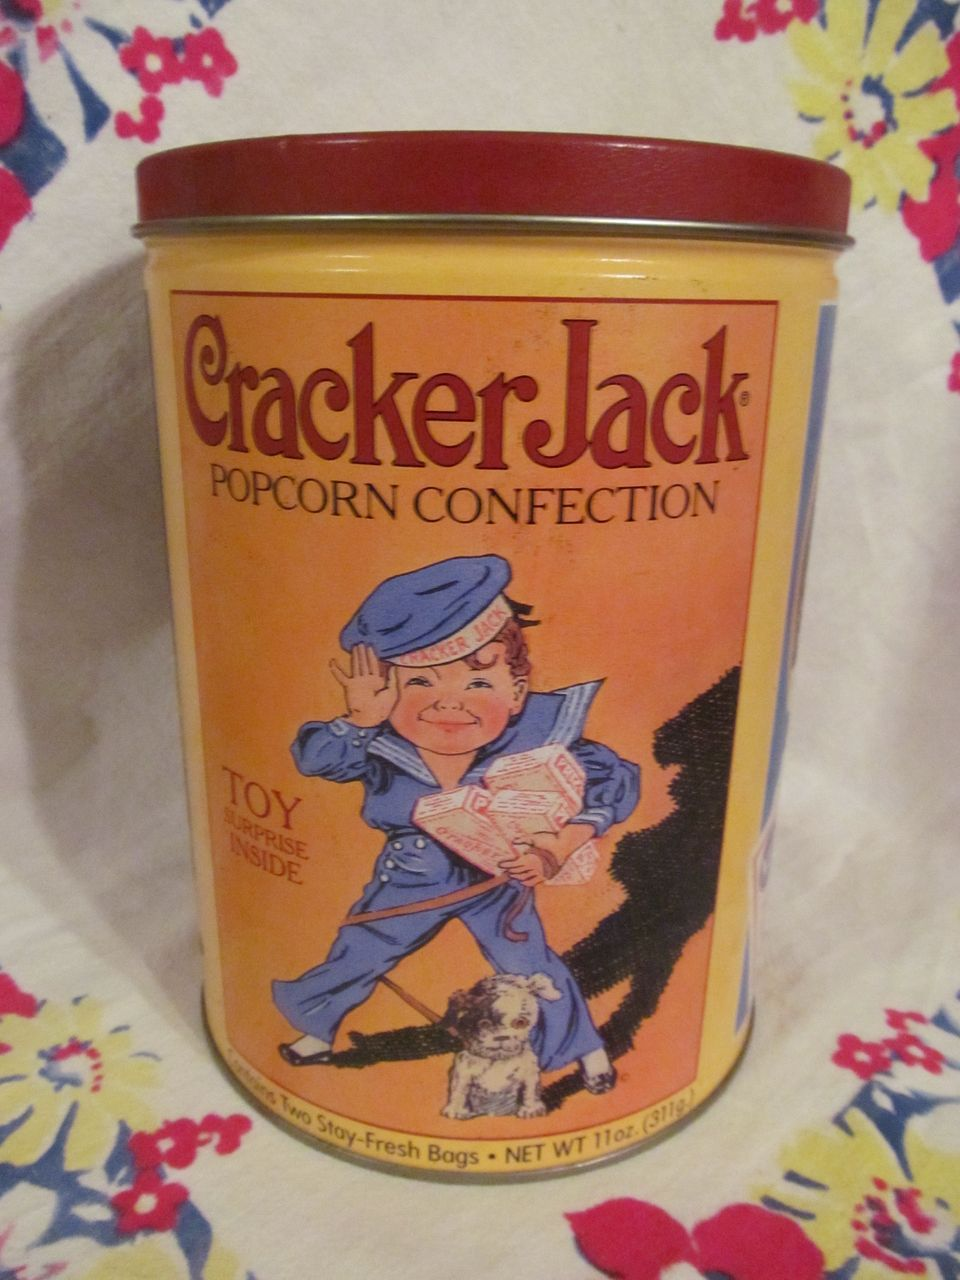 1991 Cracker Jack Tin, 2nd in Series